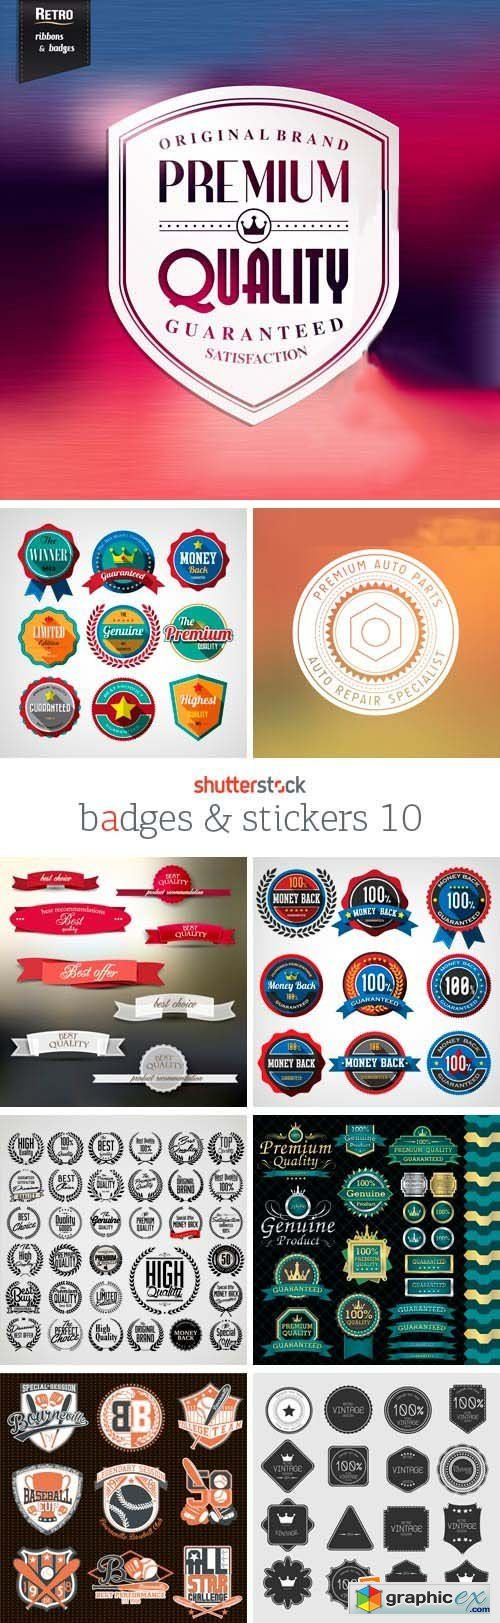 Badges & Stickers 10, 25xEPS